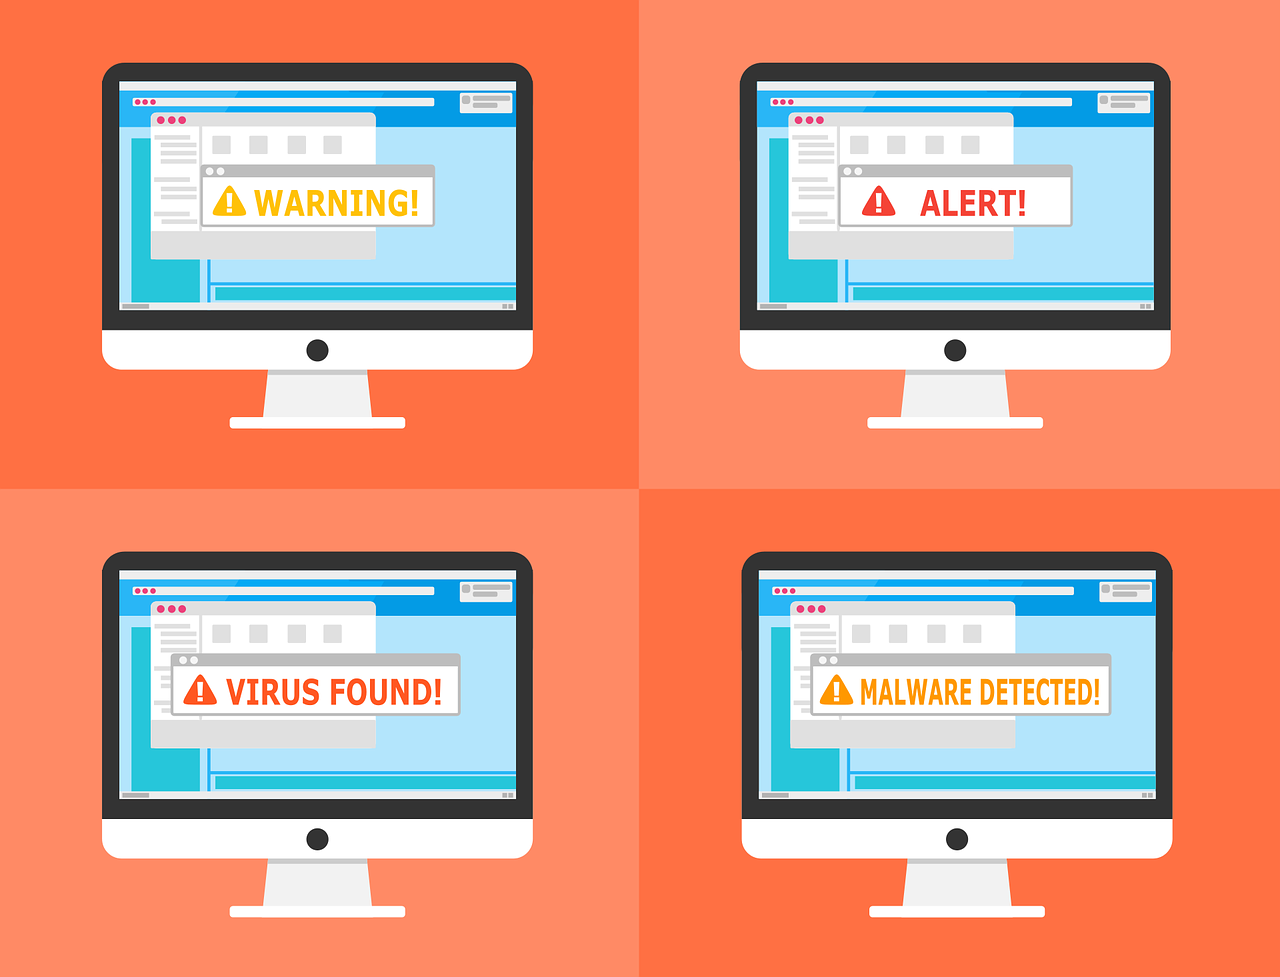 viruses, malware, adware and trojans explained